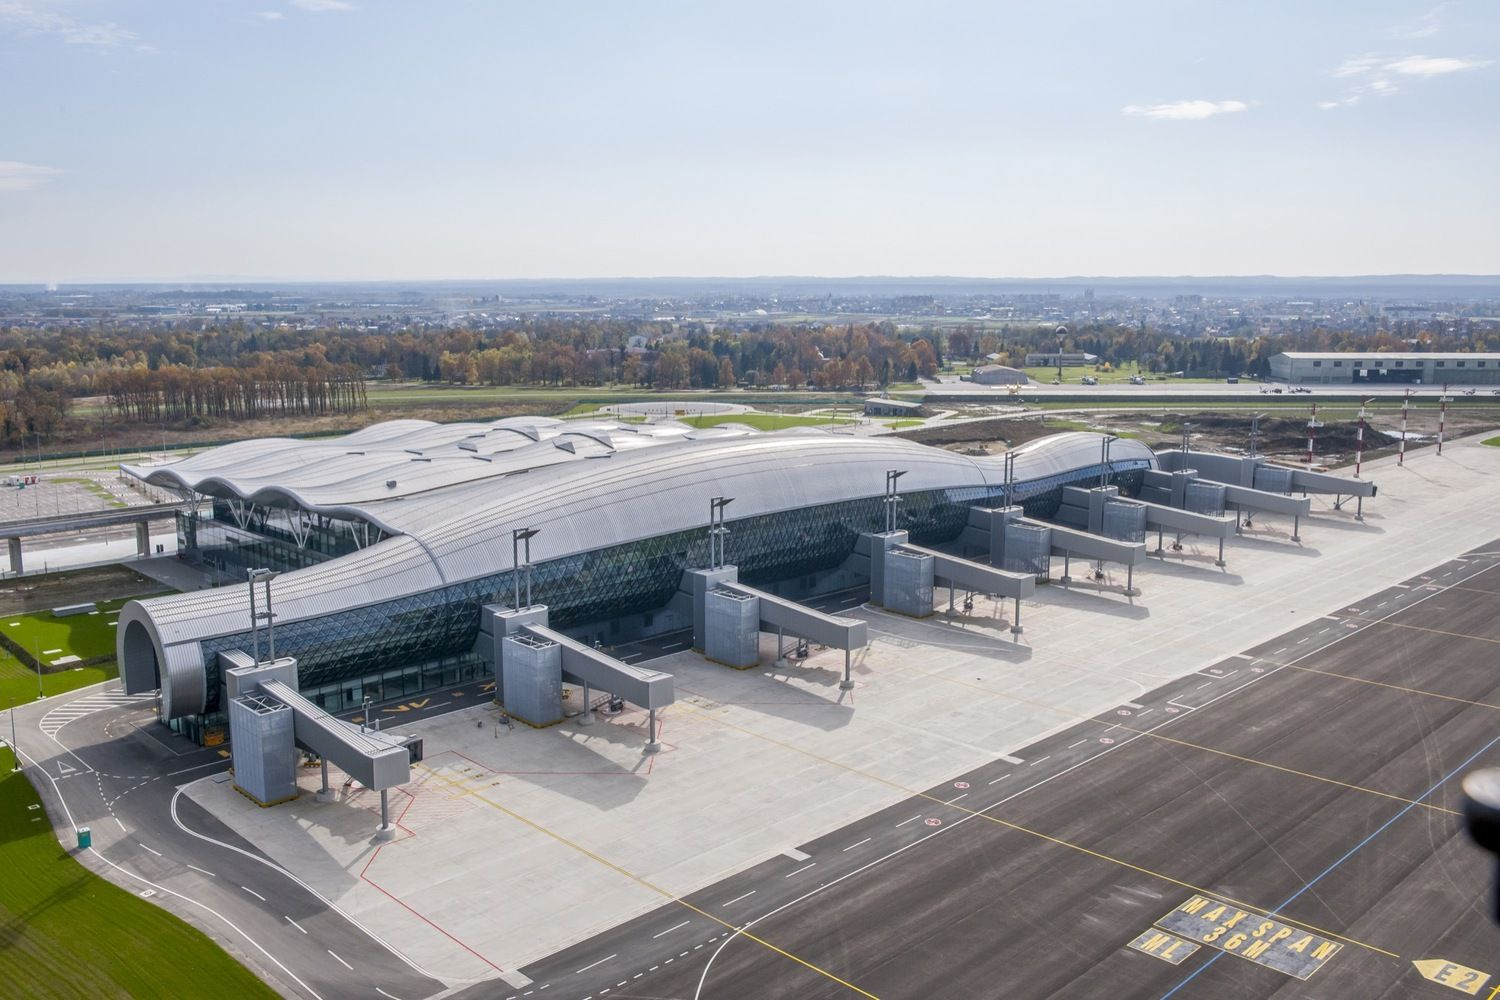 Gallery Of Zagreb Airport Kincl Neidhardt Institut Igh 2 Zagreb Airport Airport Design